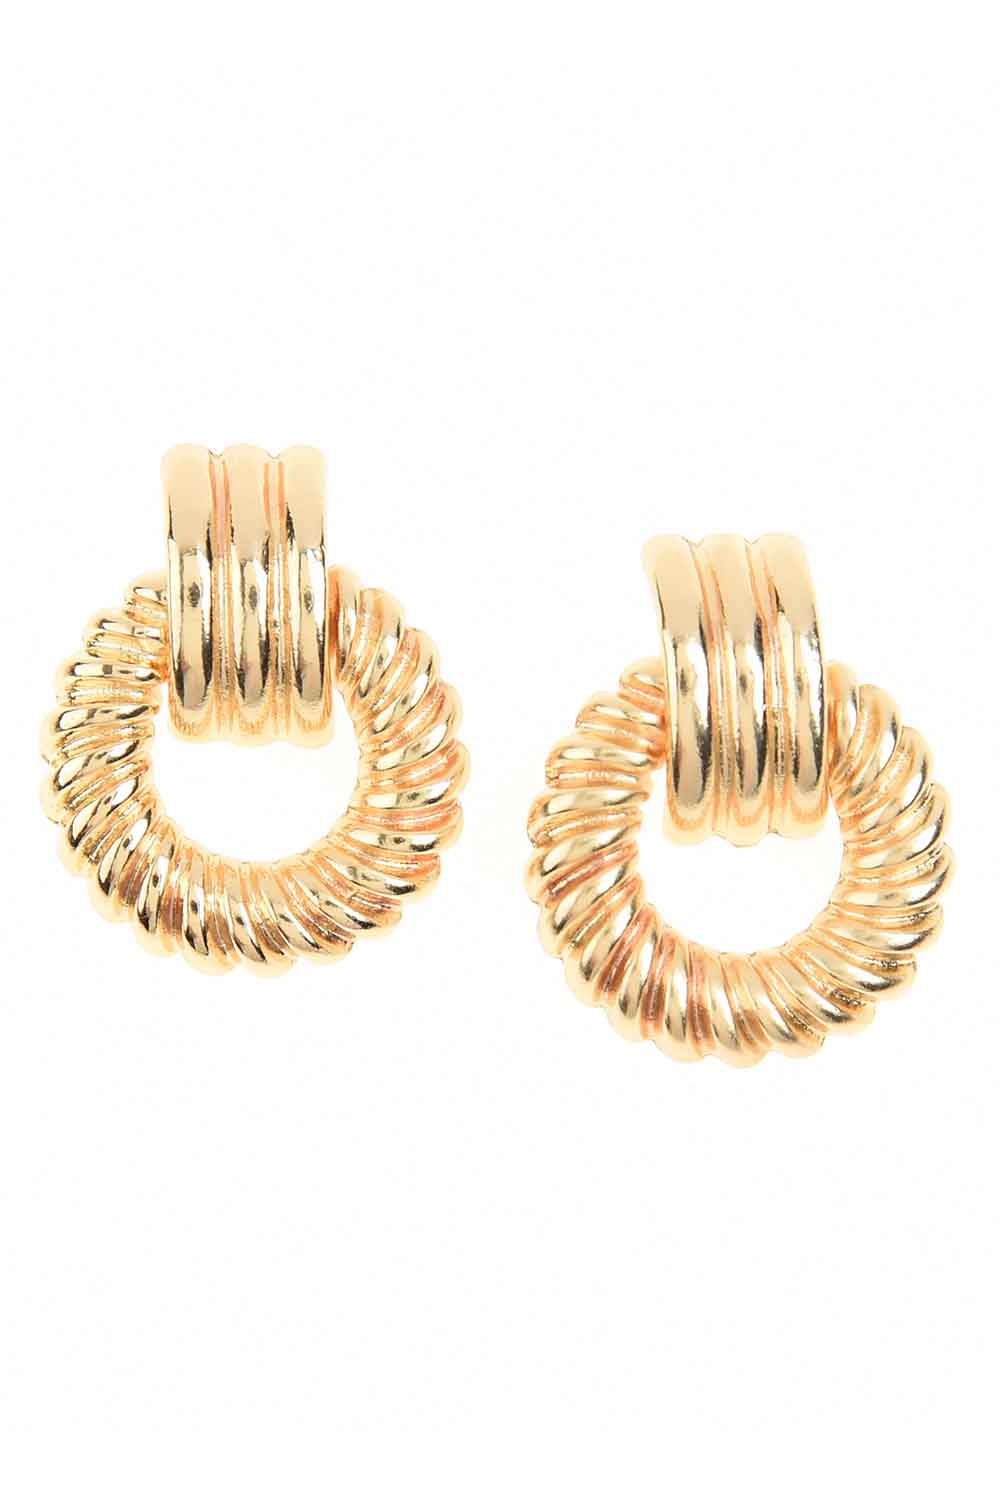 MIZALLE Auger Earrings (St) (1)